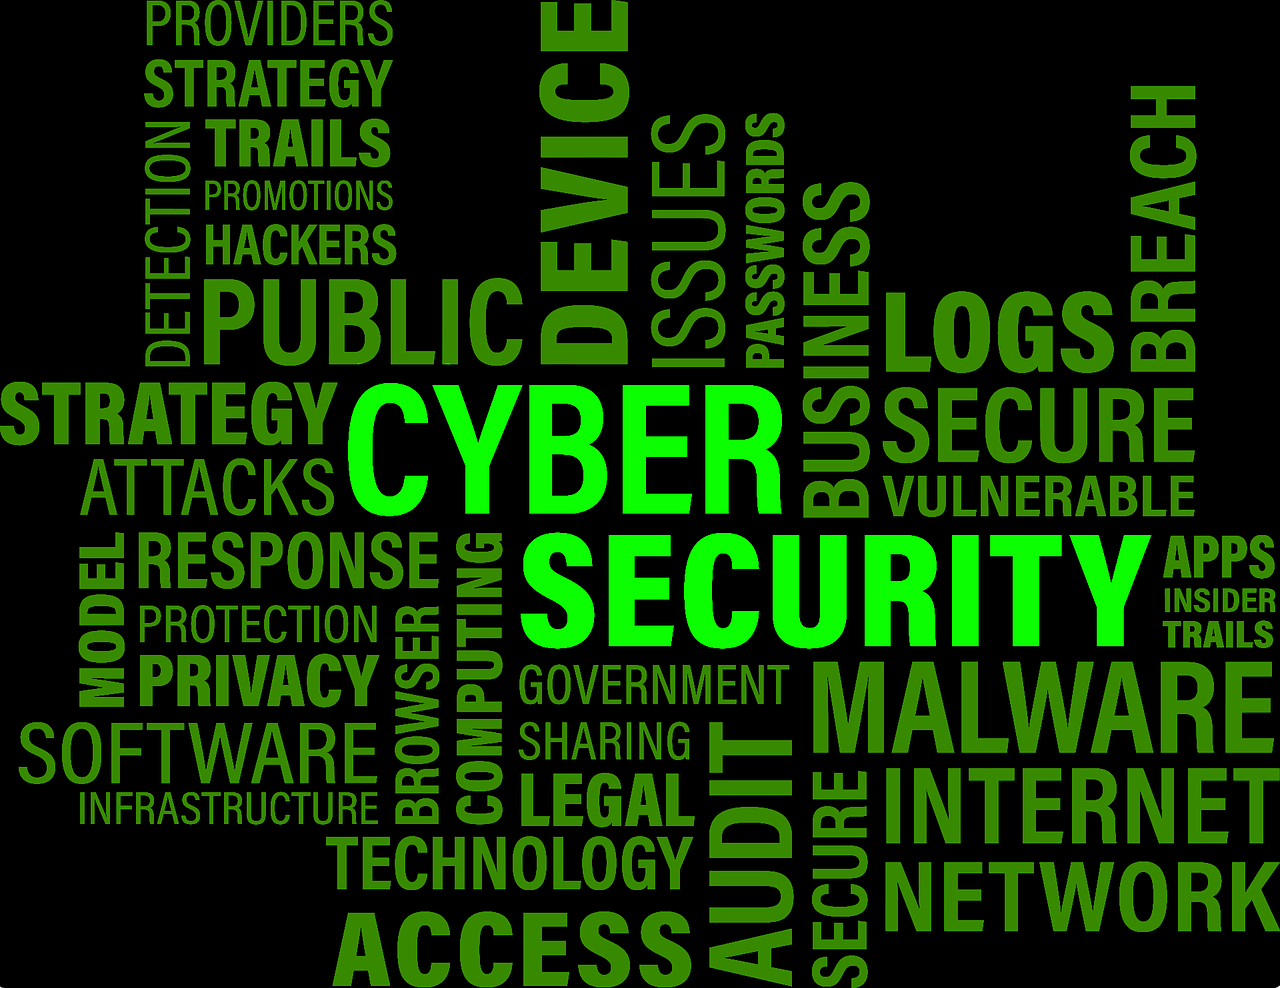 Why it is Vital That we Teach Cybersecurity in Our Schools | Emerging Education Technologies